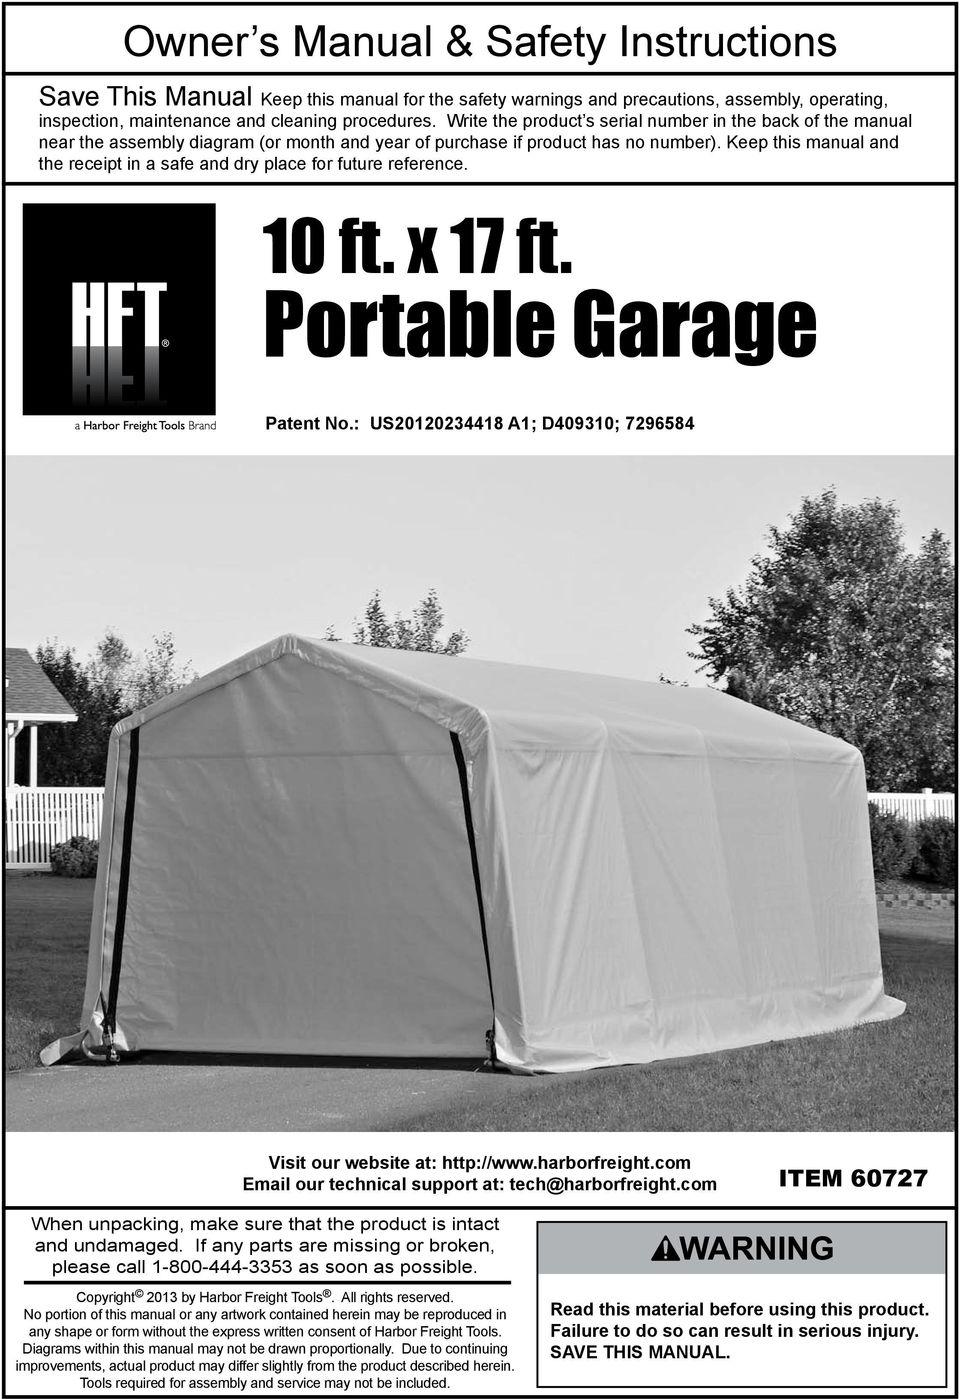 Keep this manual and the receipt in a safe and dry place for future reference. 10 ft. x 17 ft. Portable Garage Patent No.: US1234418 A1; D409310; 7296584 Visit our website at: http://www.